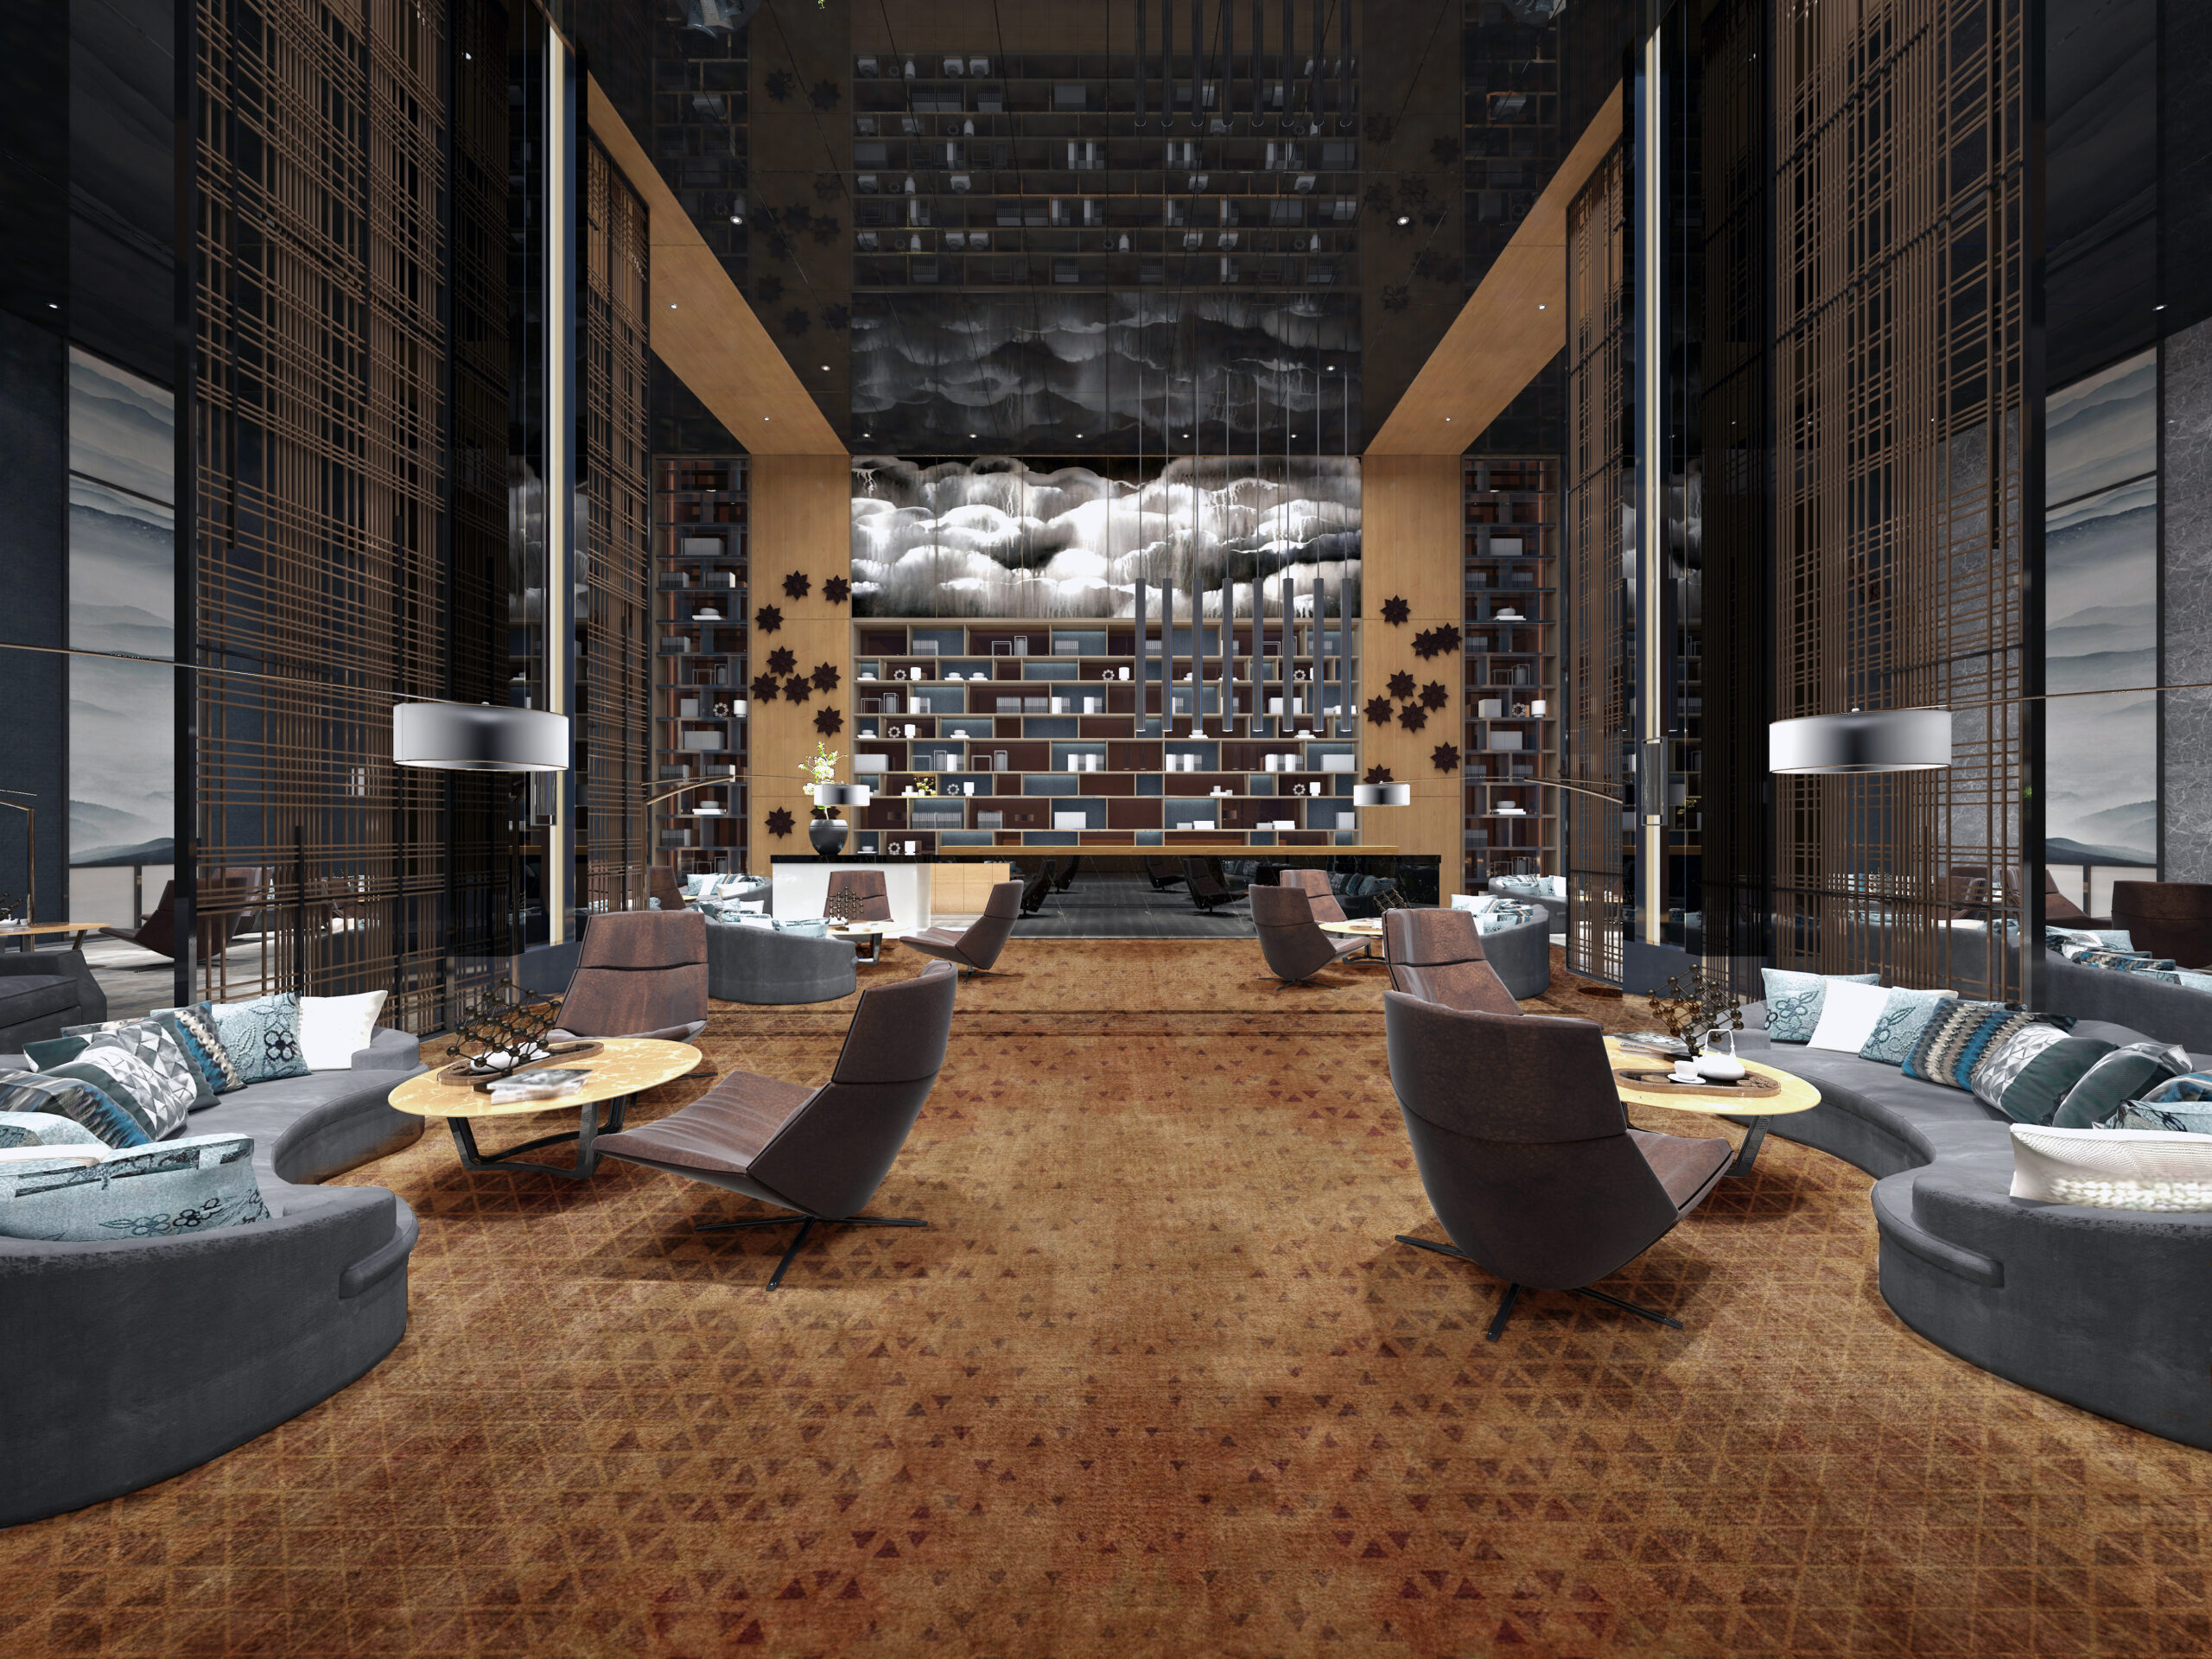 Bespoke carpets for luxury hotels and restaurants